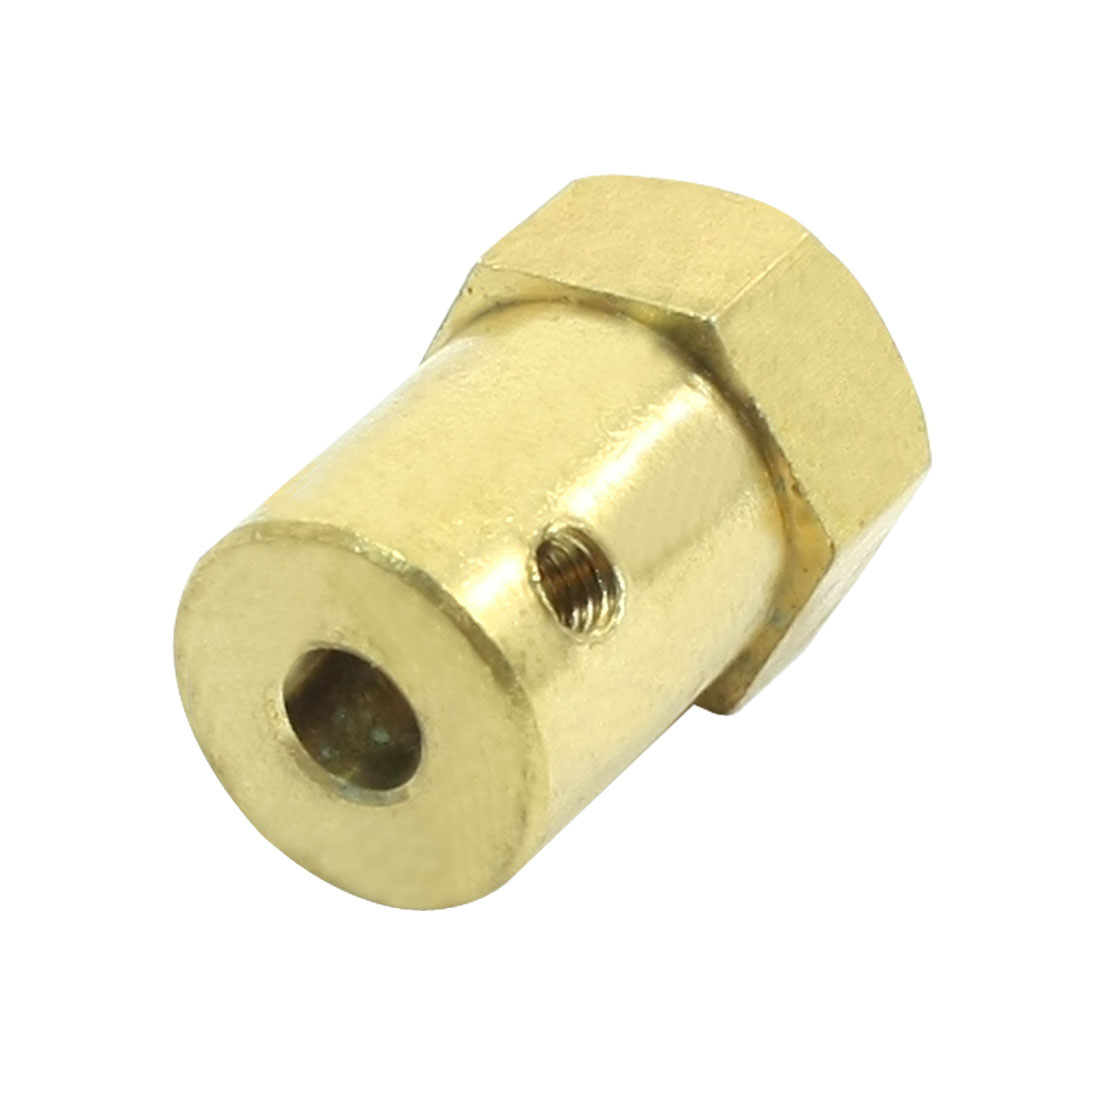 4mm-Shaft-Dia-DC-Geared-Motor-to-Robot-Small-Car-Wheels-Hex-Coupler